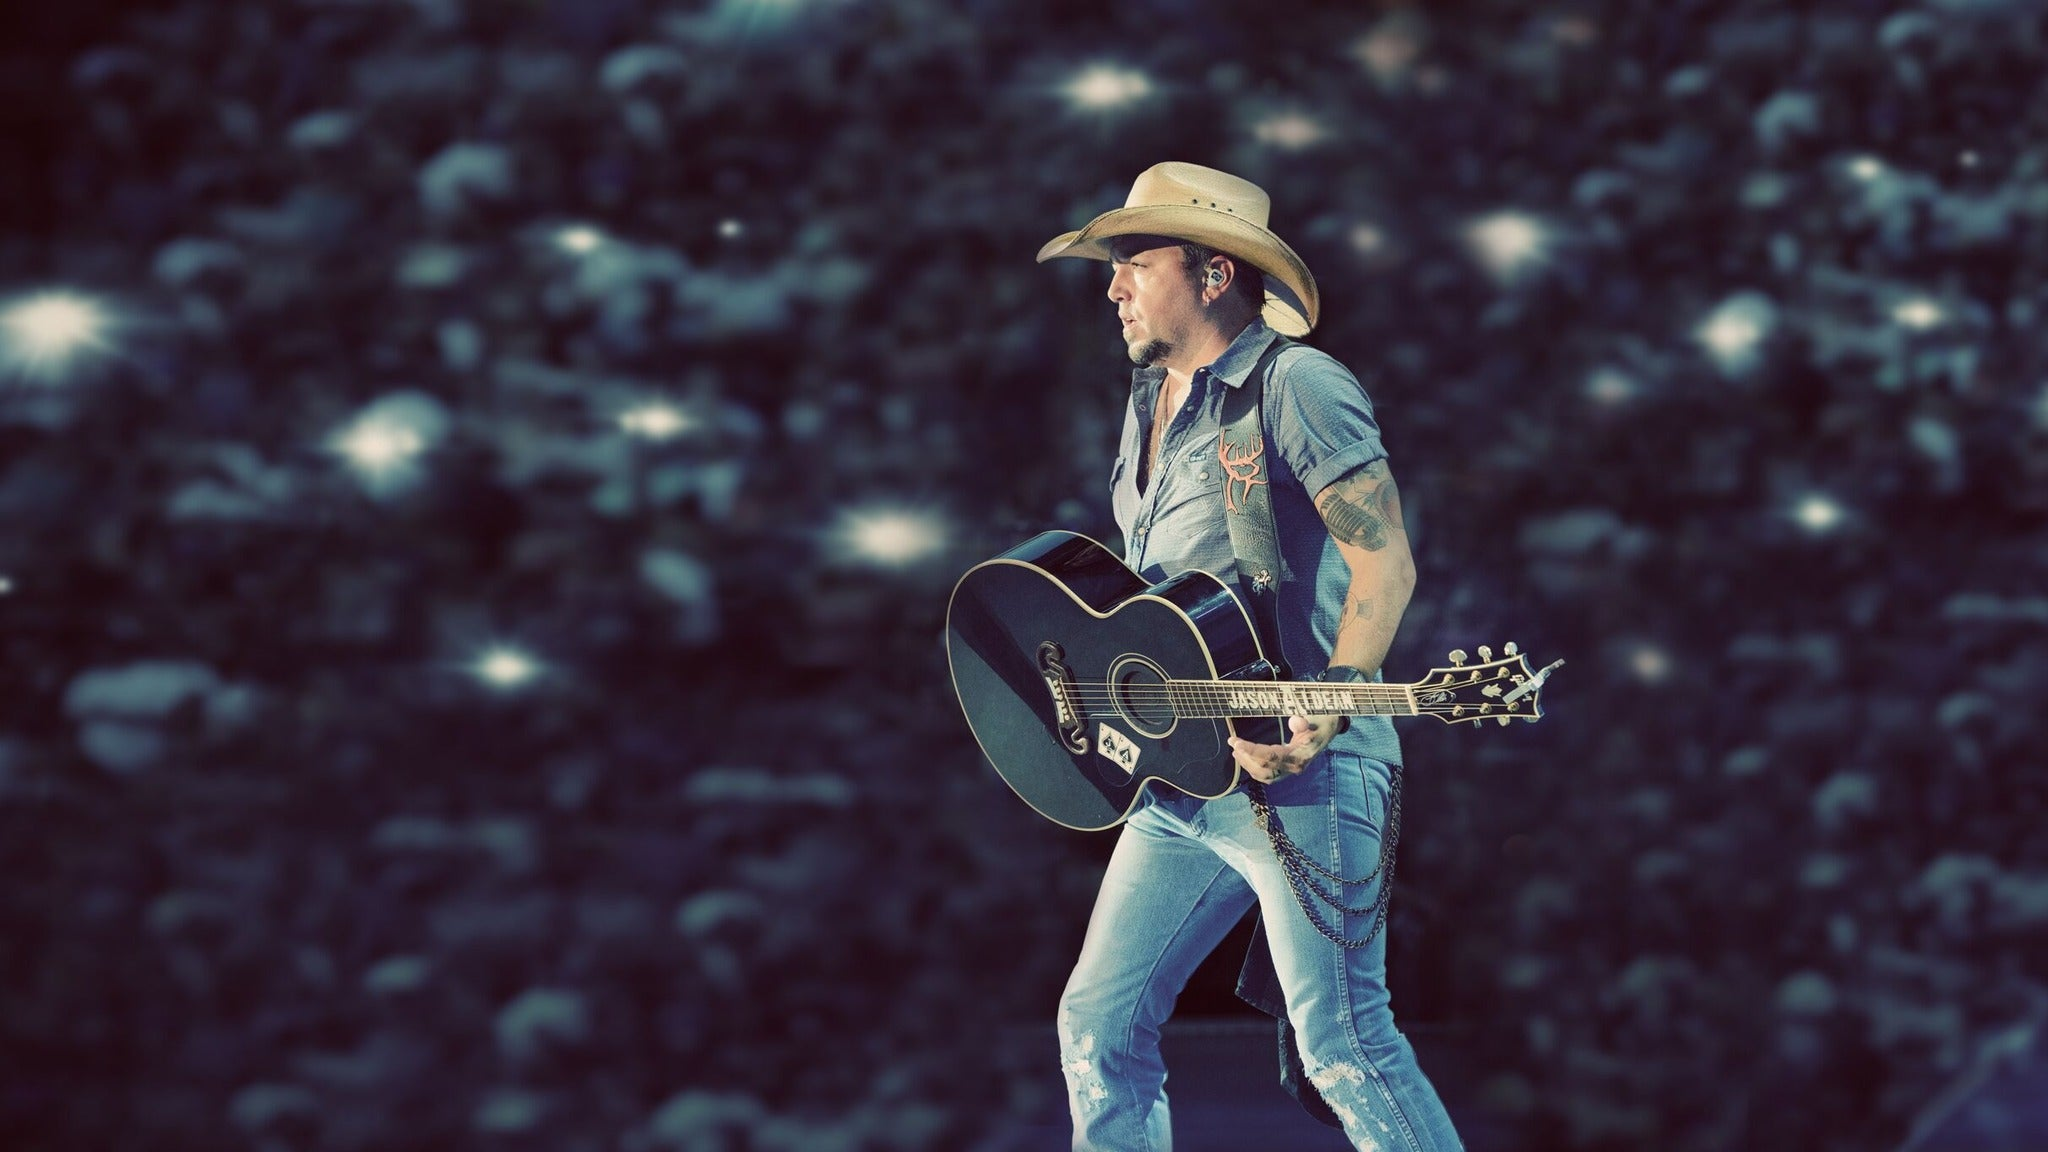 Jason Aldean: Six String Circus Tour